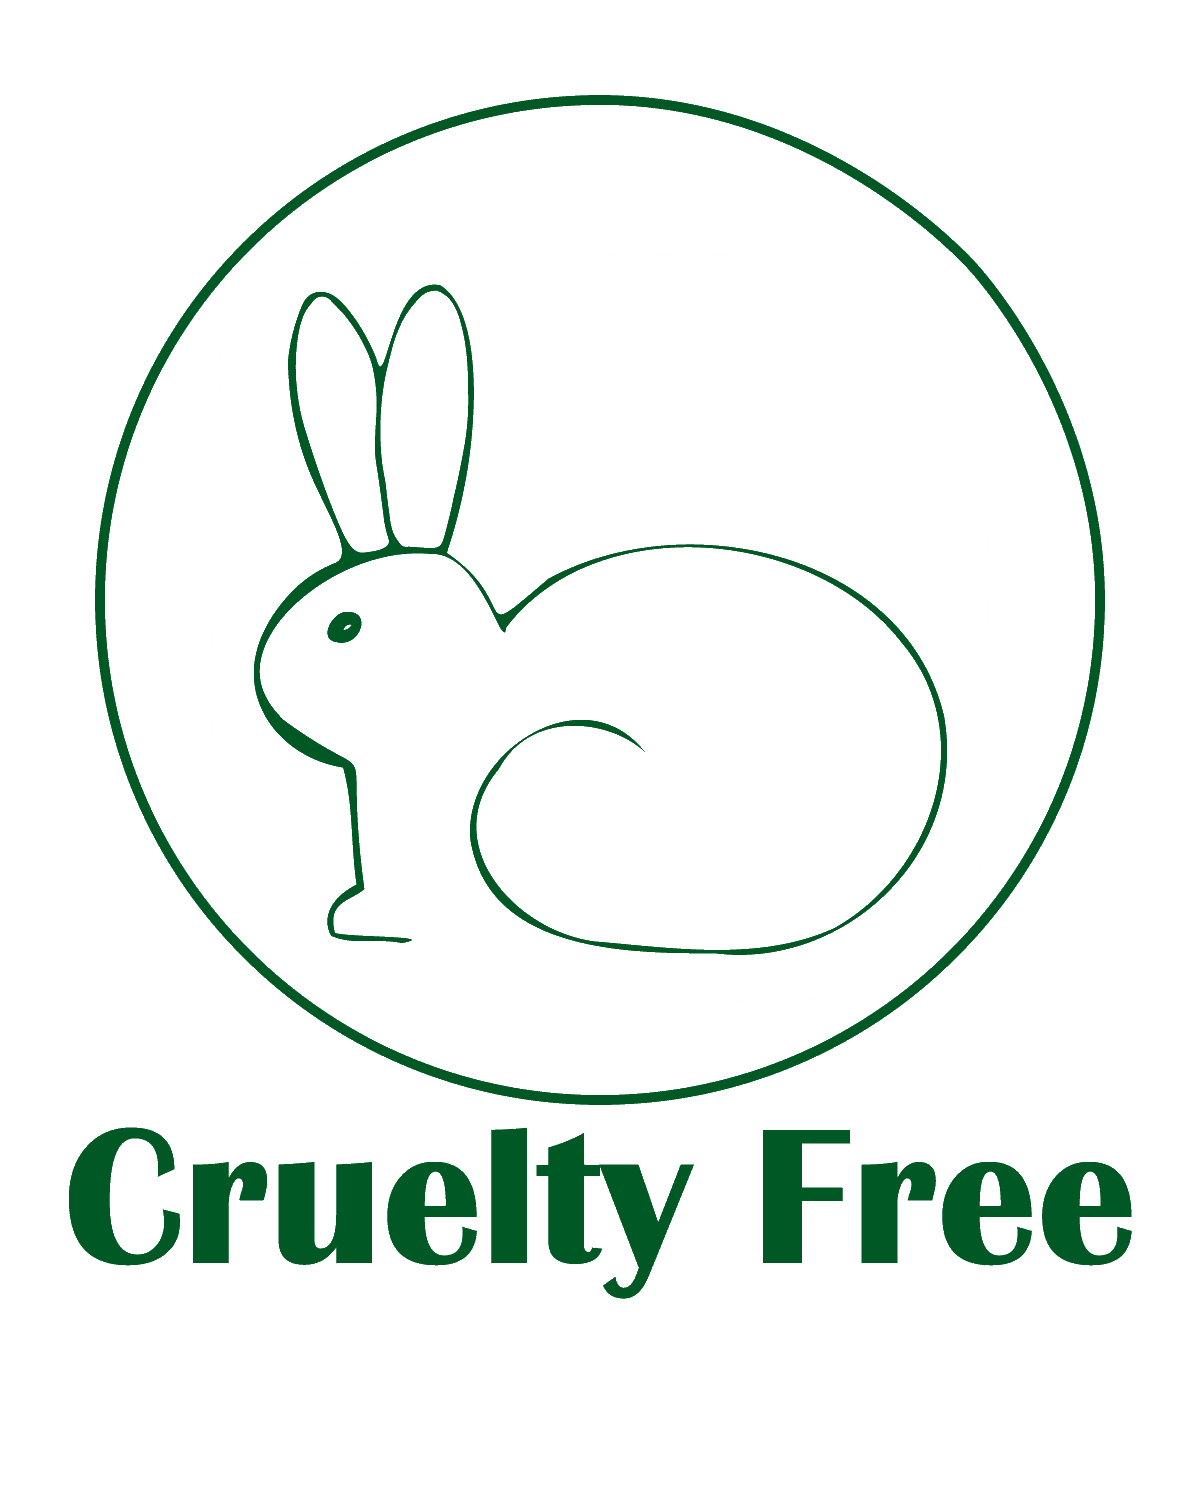 The Green Bundle Cruelty Free Logo